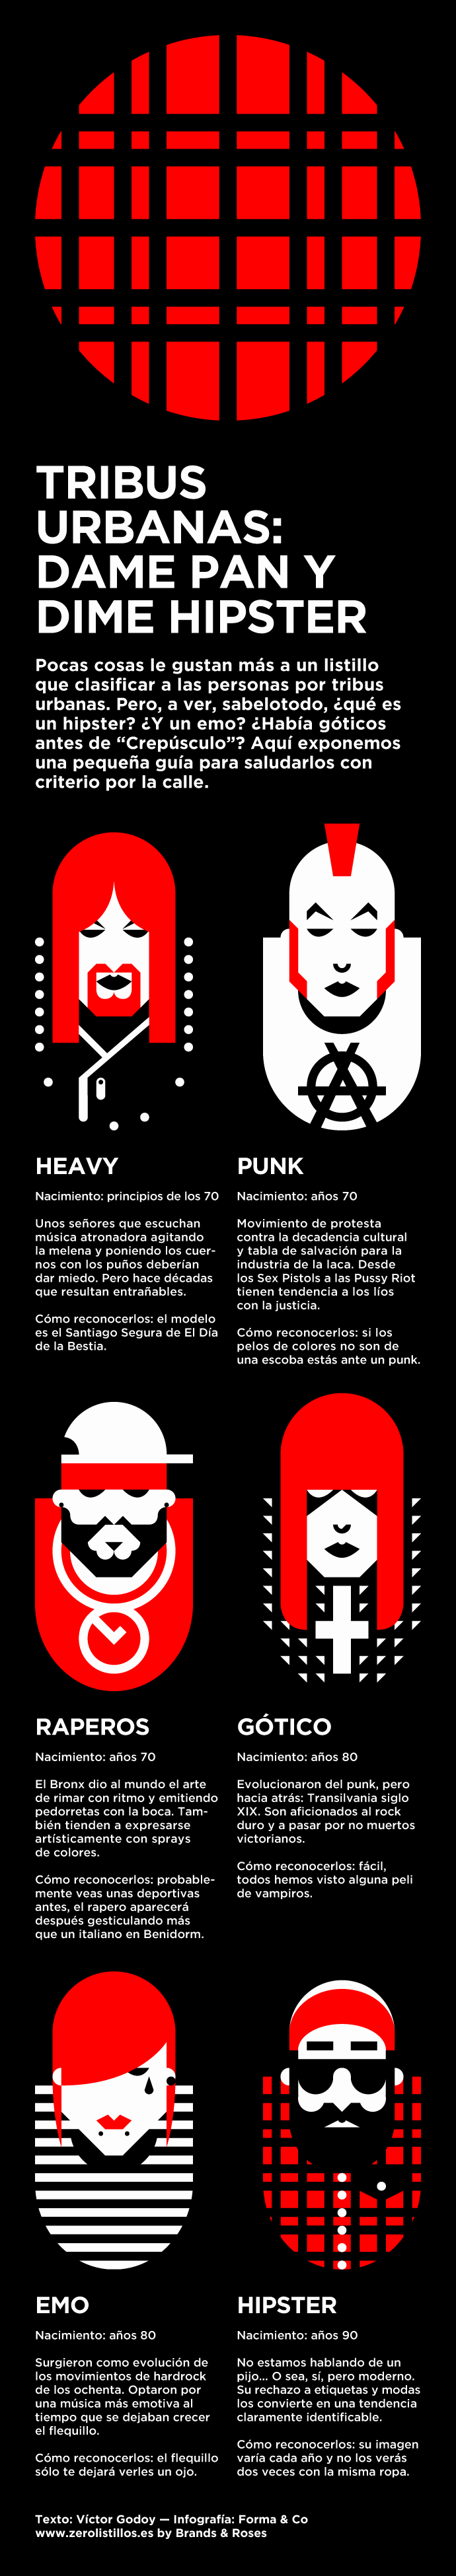 POPULAR CULTURE > Fashion/trends [Infographic]